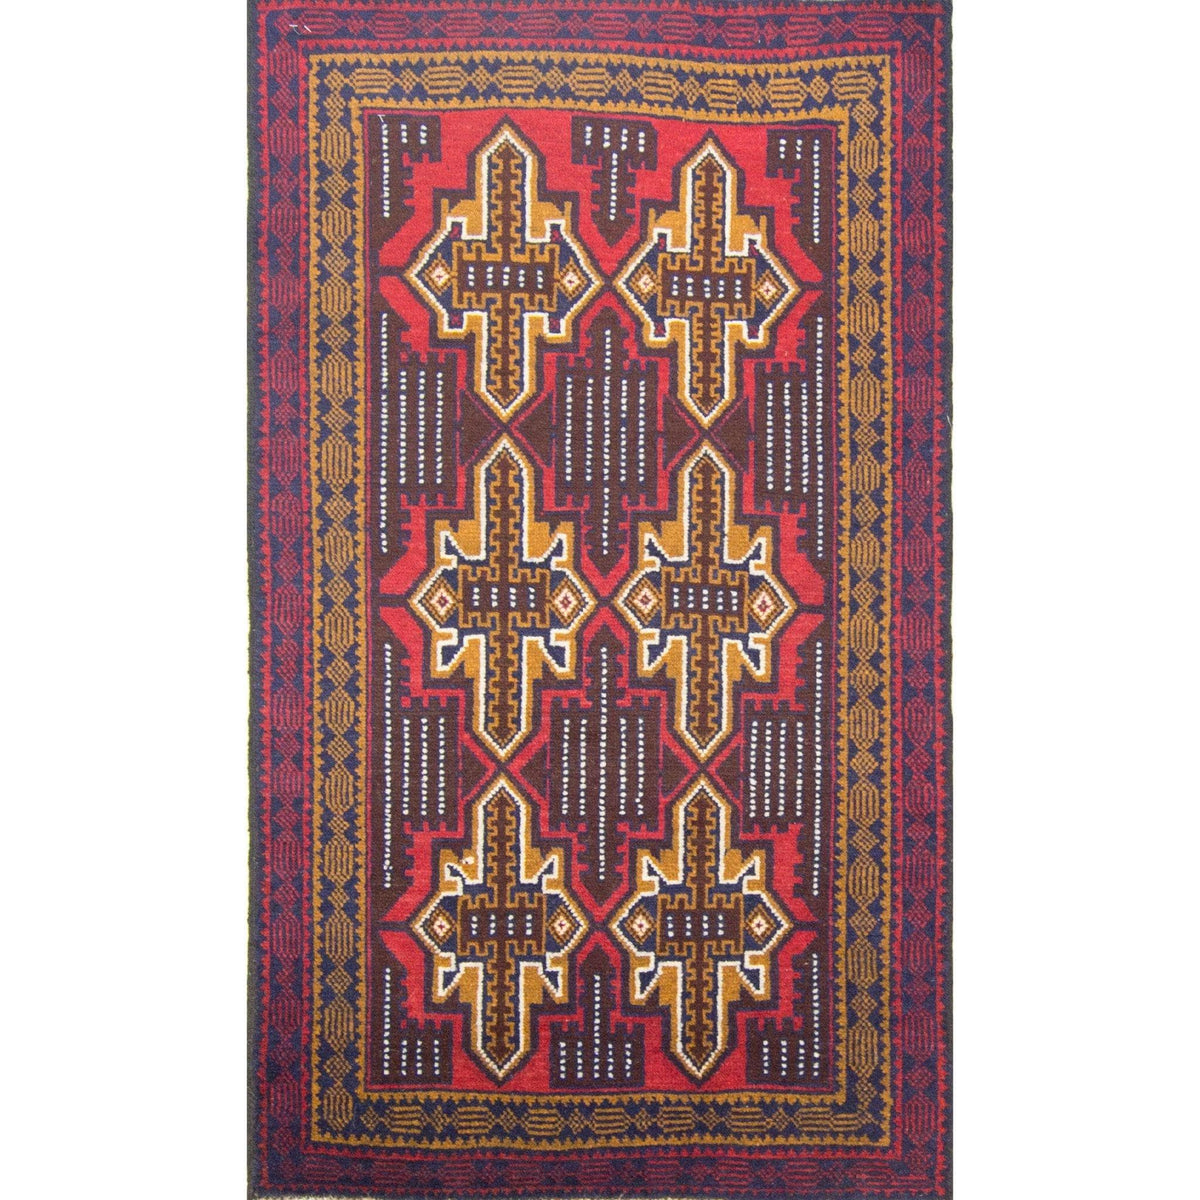 Hand-knotted Wool Baluchi Rug 86cm x 144cm Persian-Rug | House-of-Haghi | NewMarket | Auckland | NZ | Handmade Persian Rugs | Hand Knotted Persian Rugs